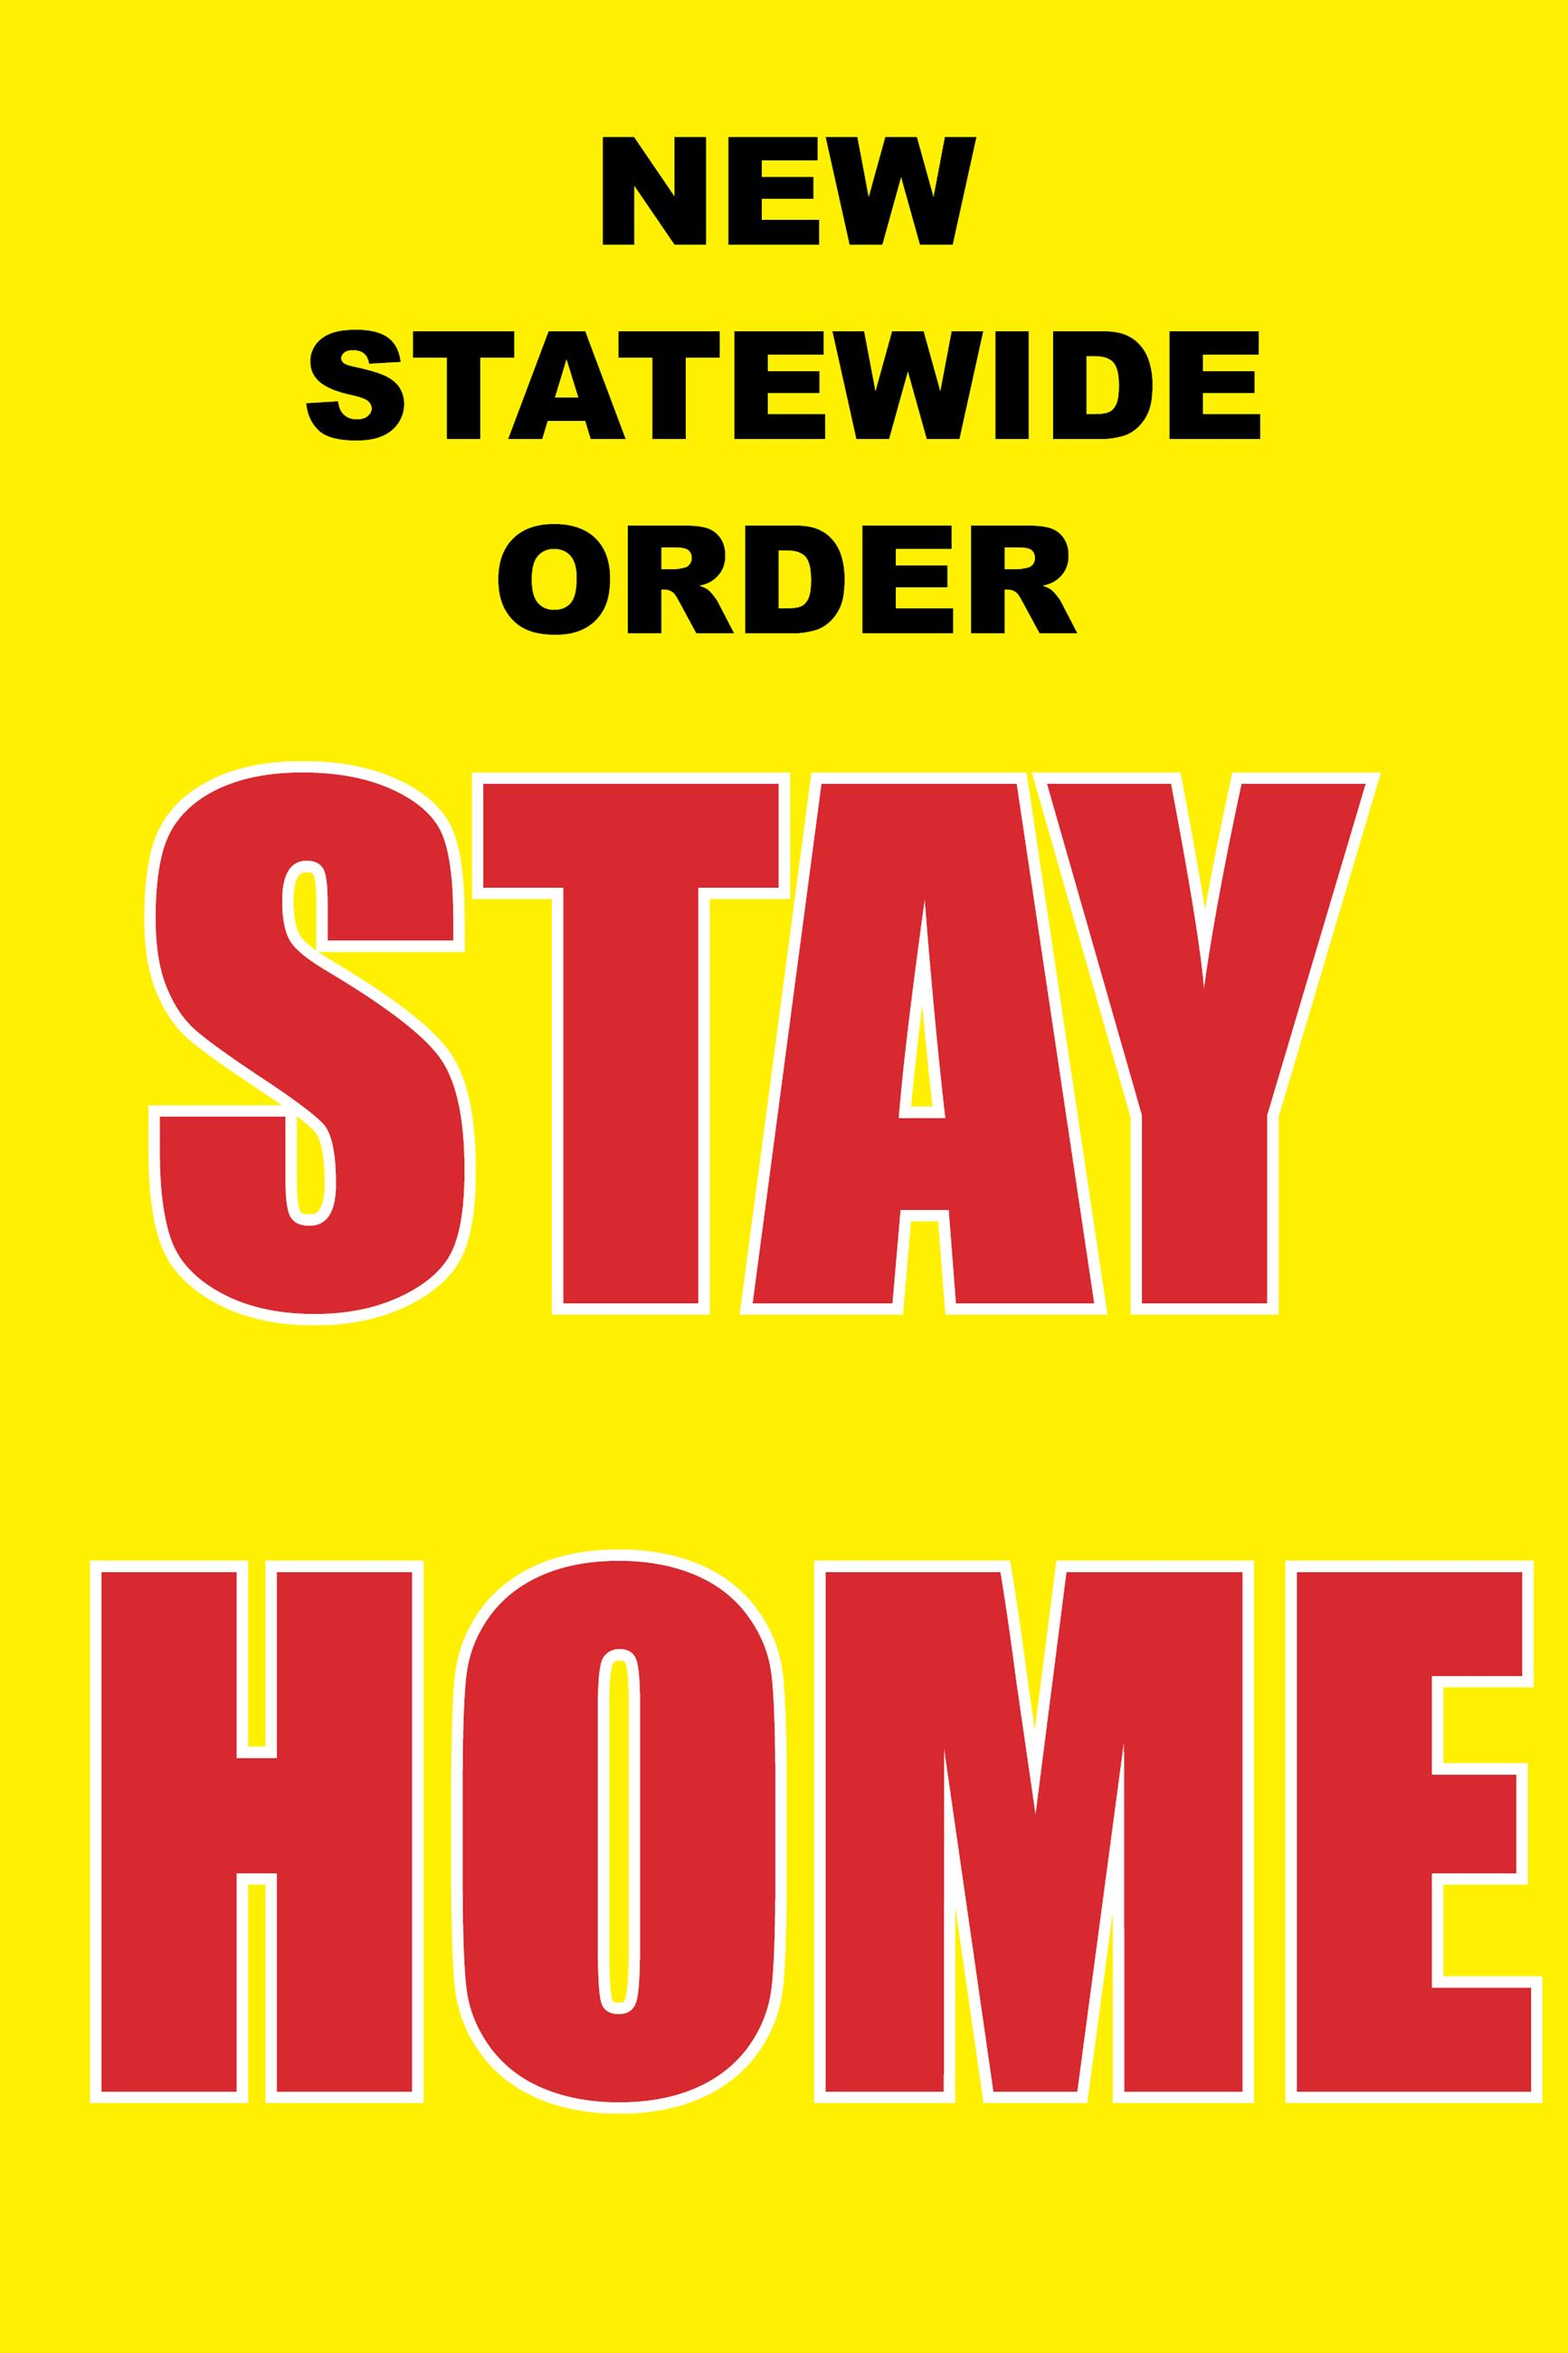 Stay Home FB graphic 03.28.2020